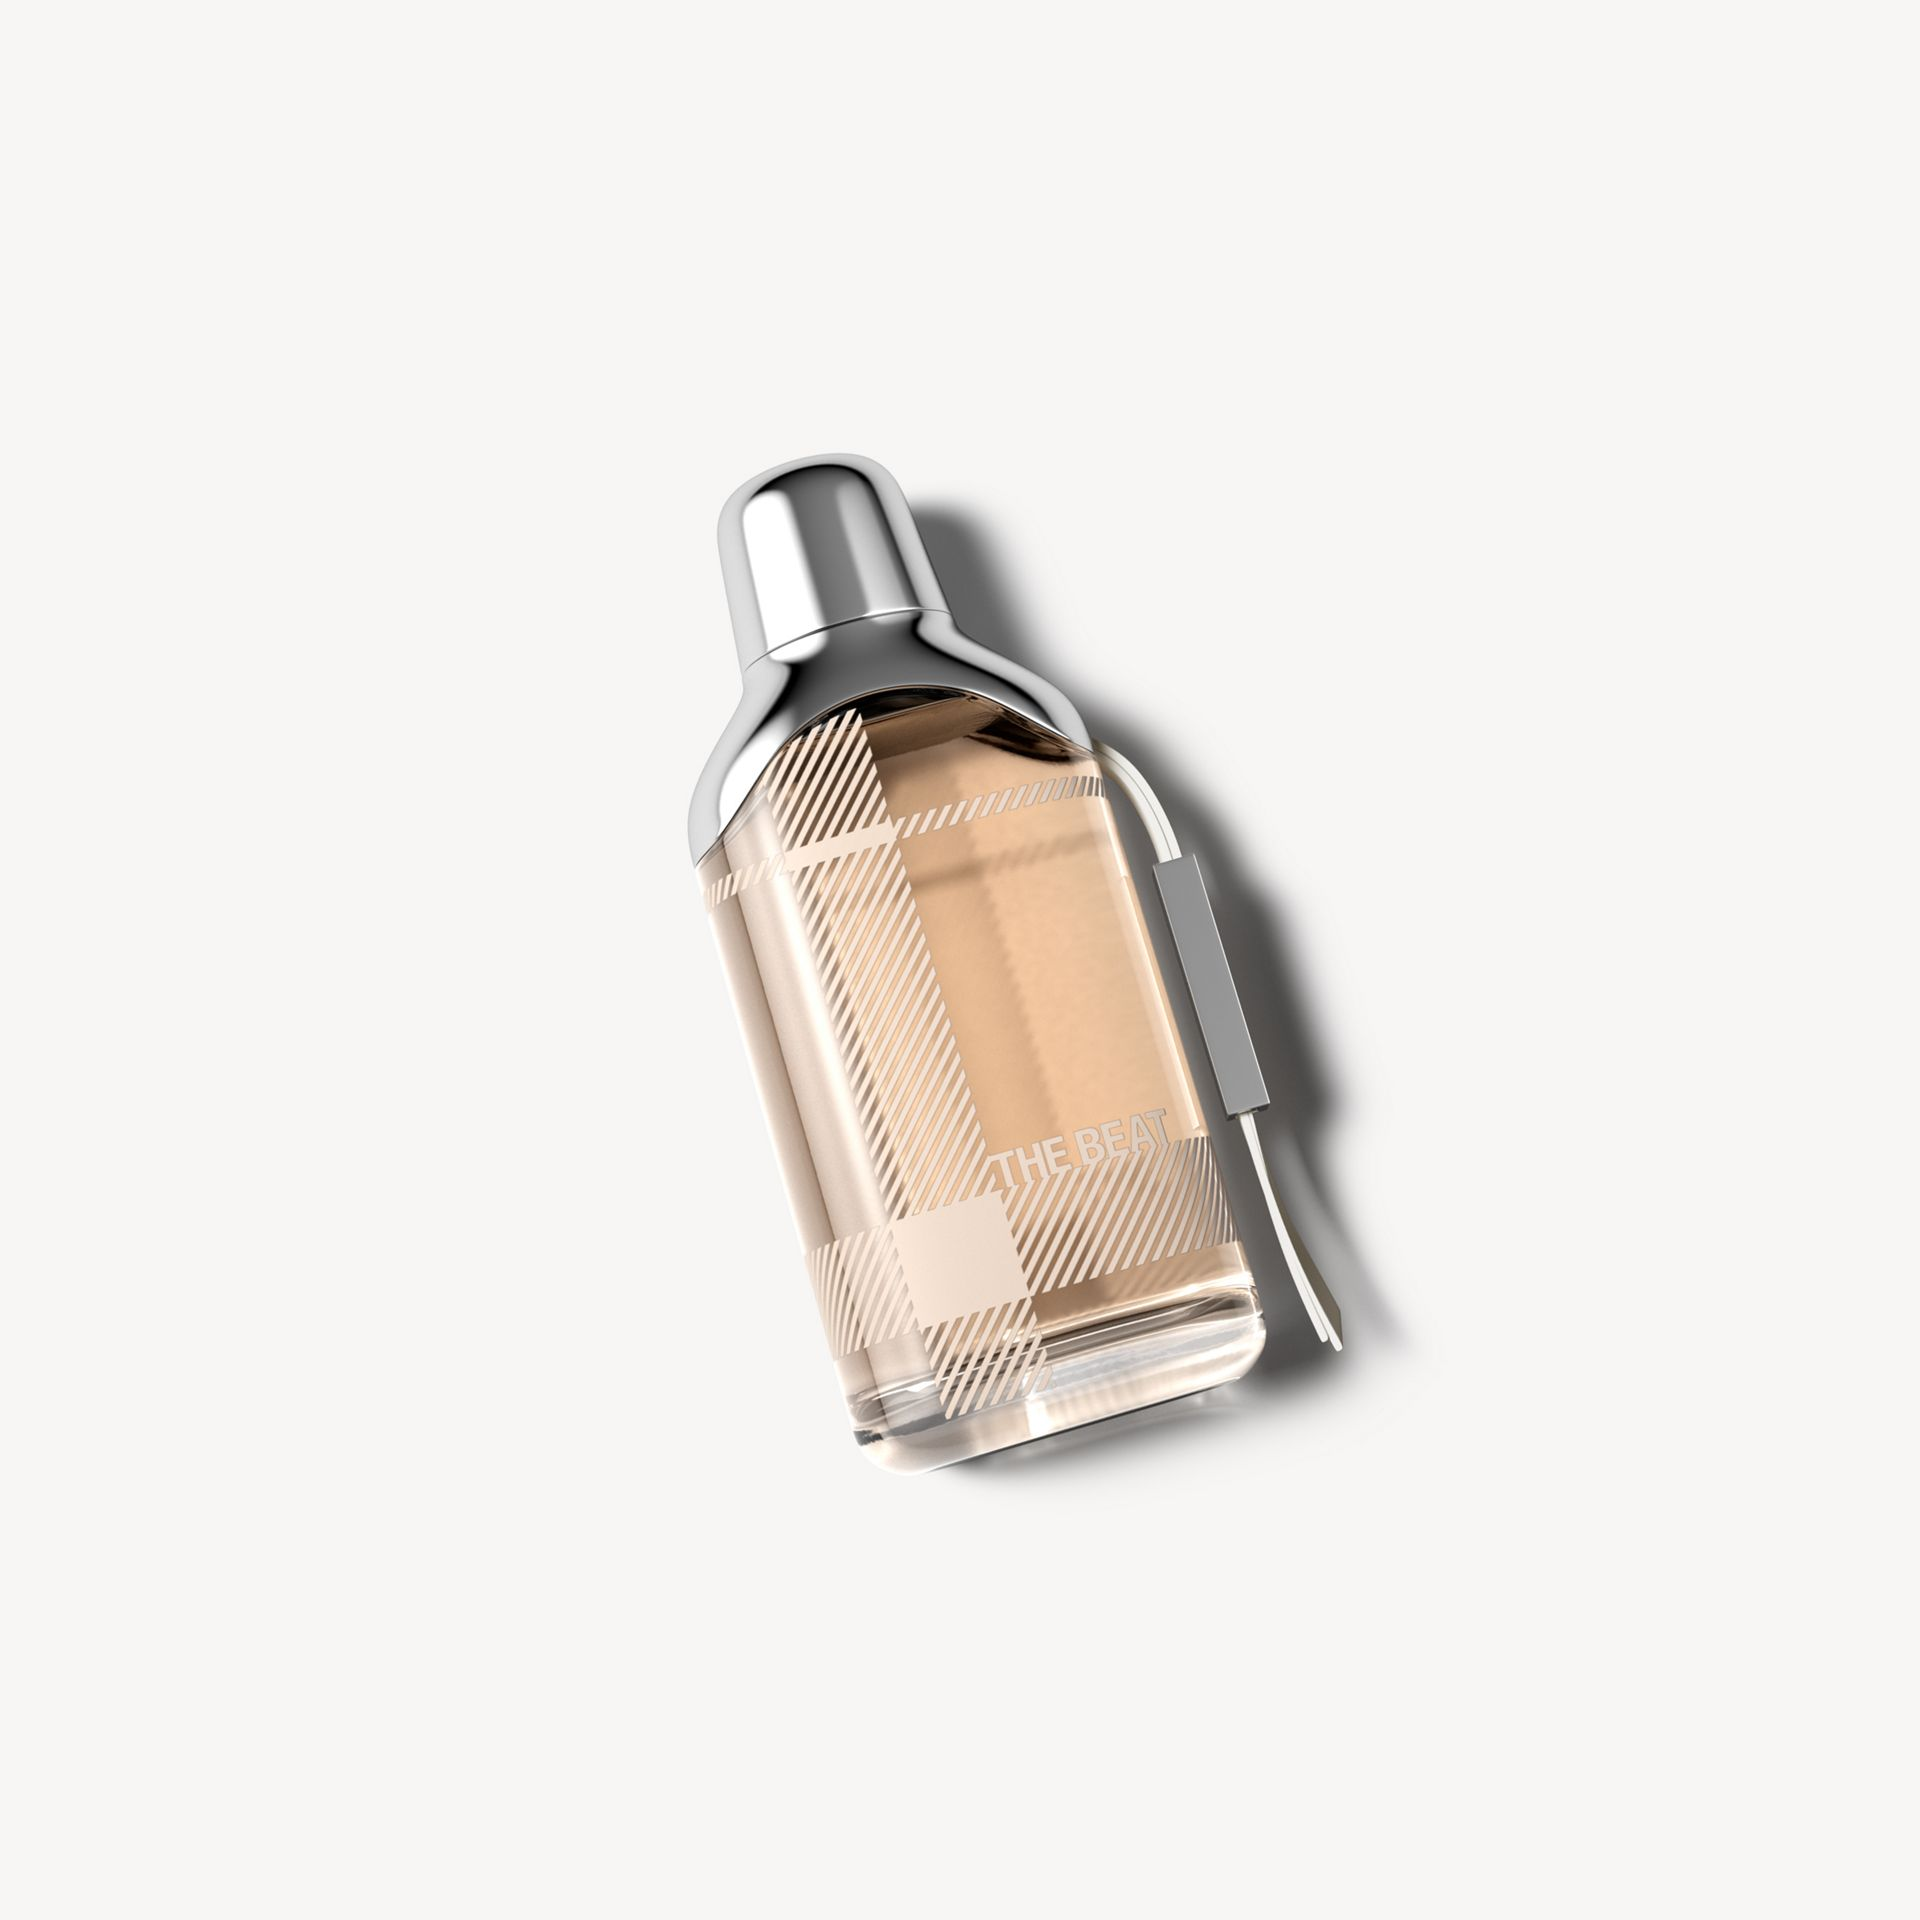 Burberry The Beat 香水 50ml - 圖庫照片 1